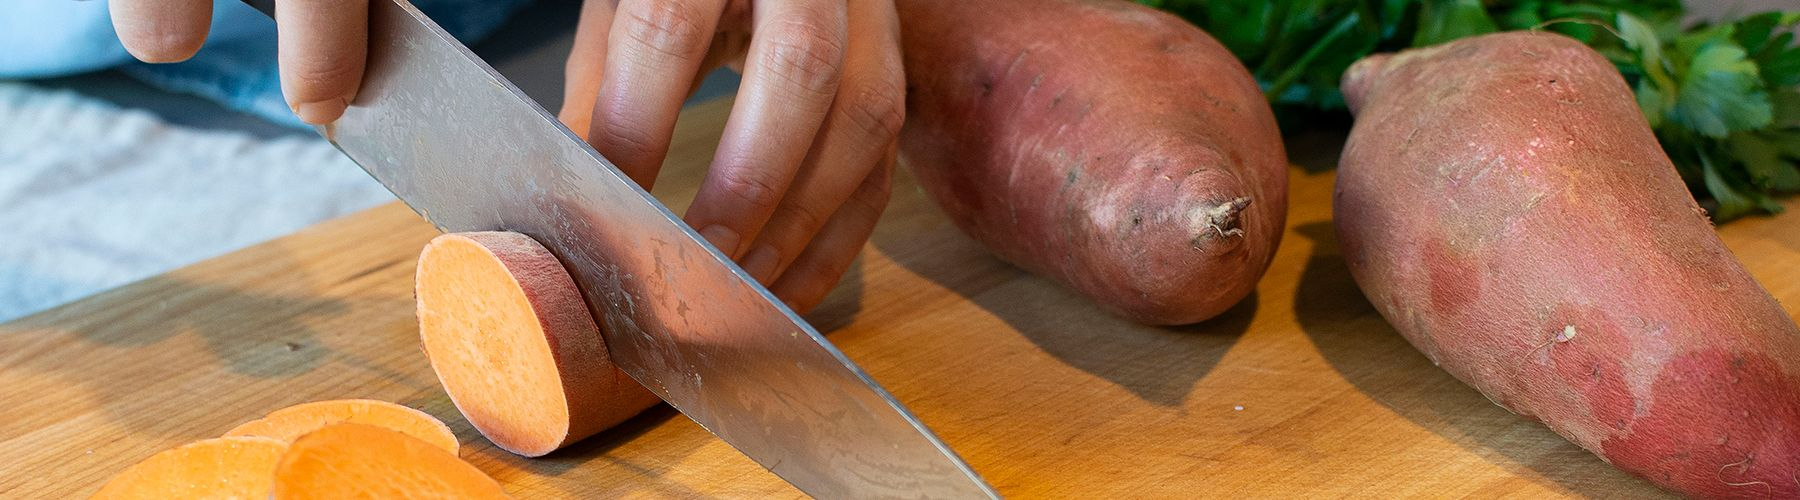 2019-12 Hands Cutting Sweet Potatoes WEBSITE.jpg